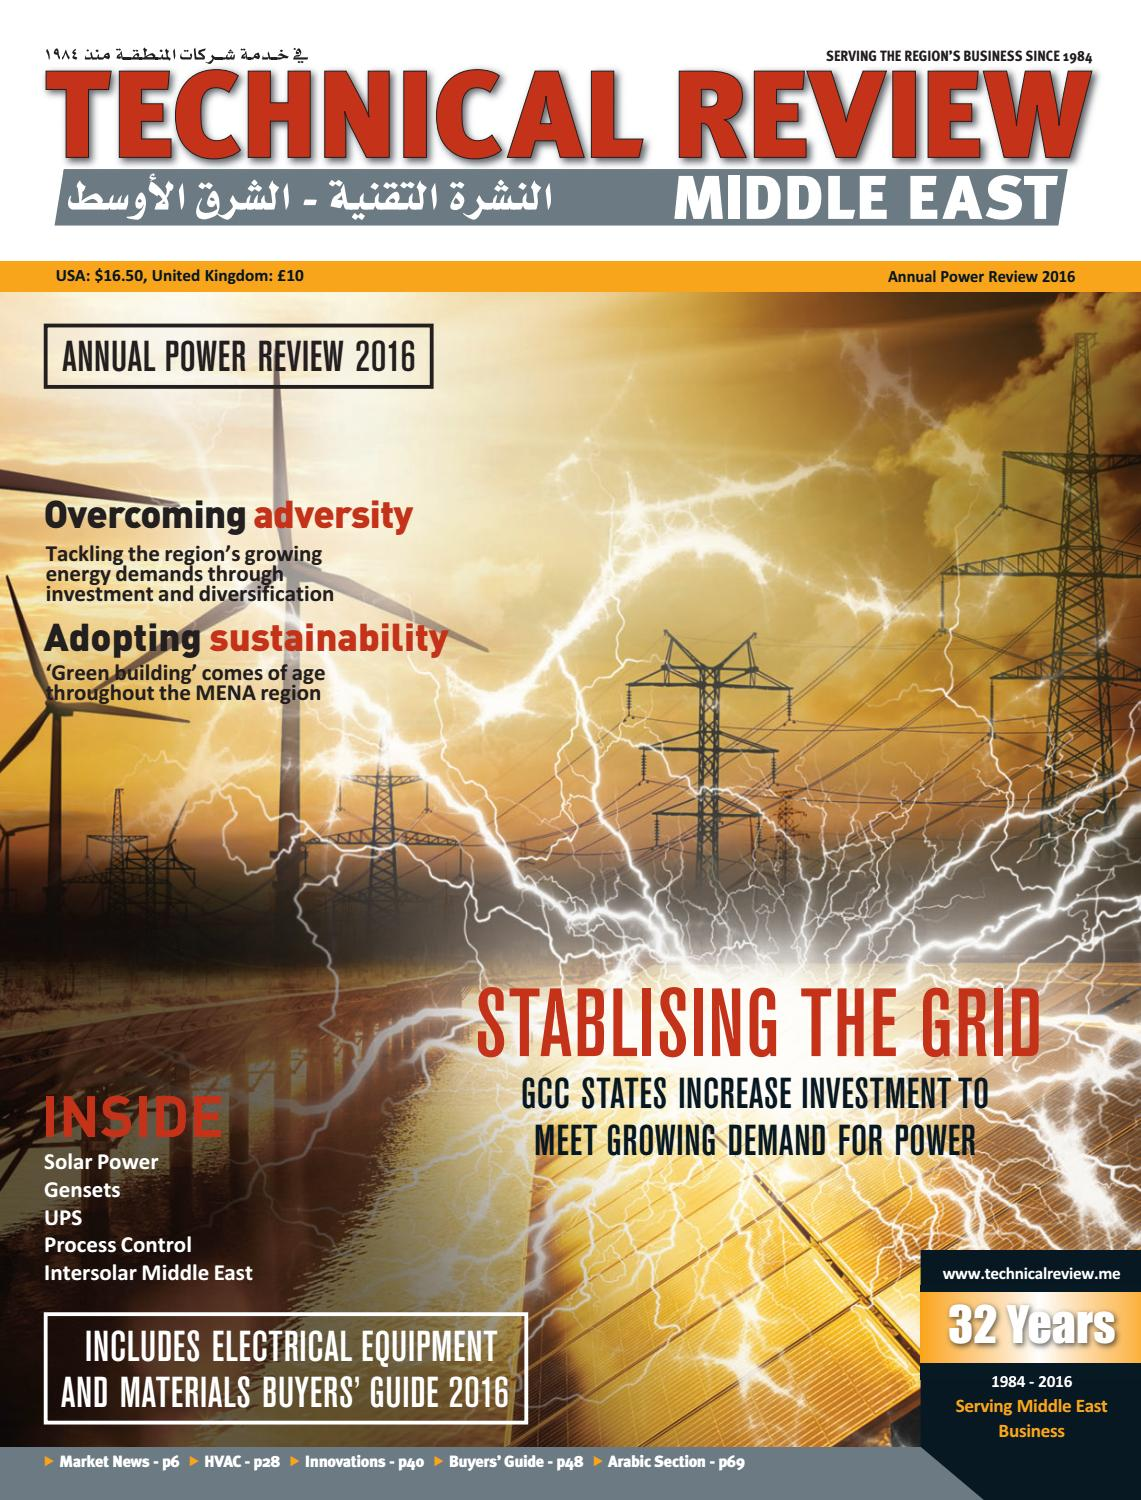 Technical Review Middle East Power 2016 By Alain Charles Publishing Mk Wiring Devices Qatar Issuu